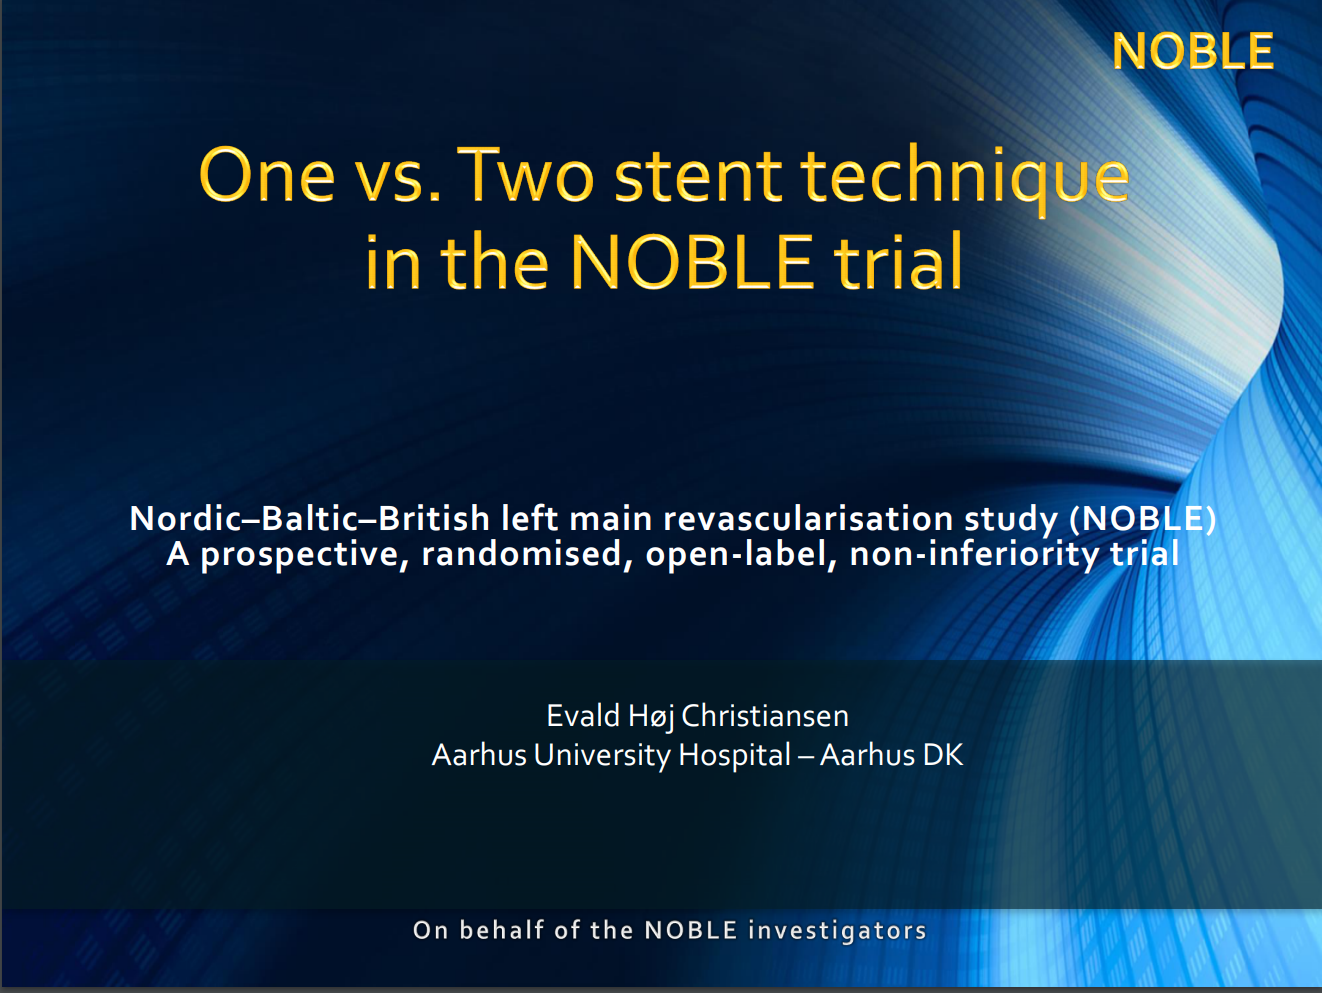 One vs two stent technique in the Noble trial